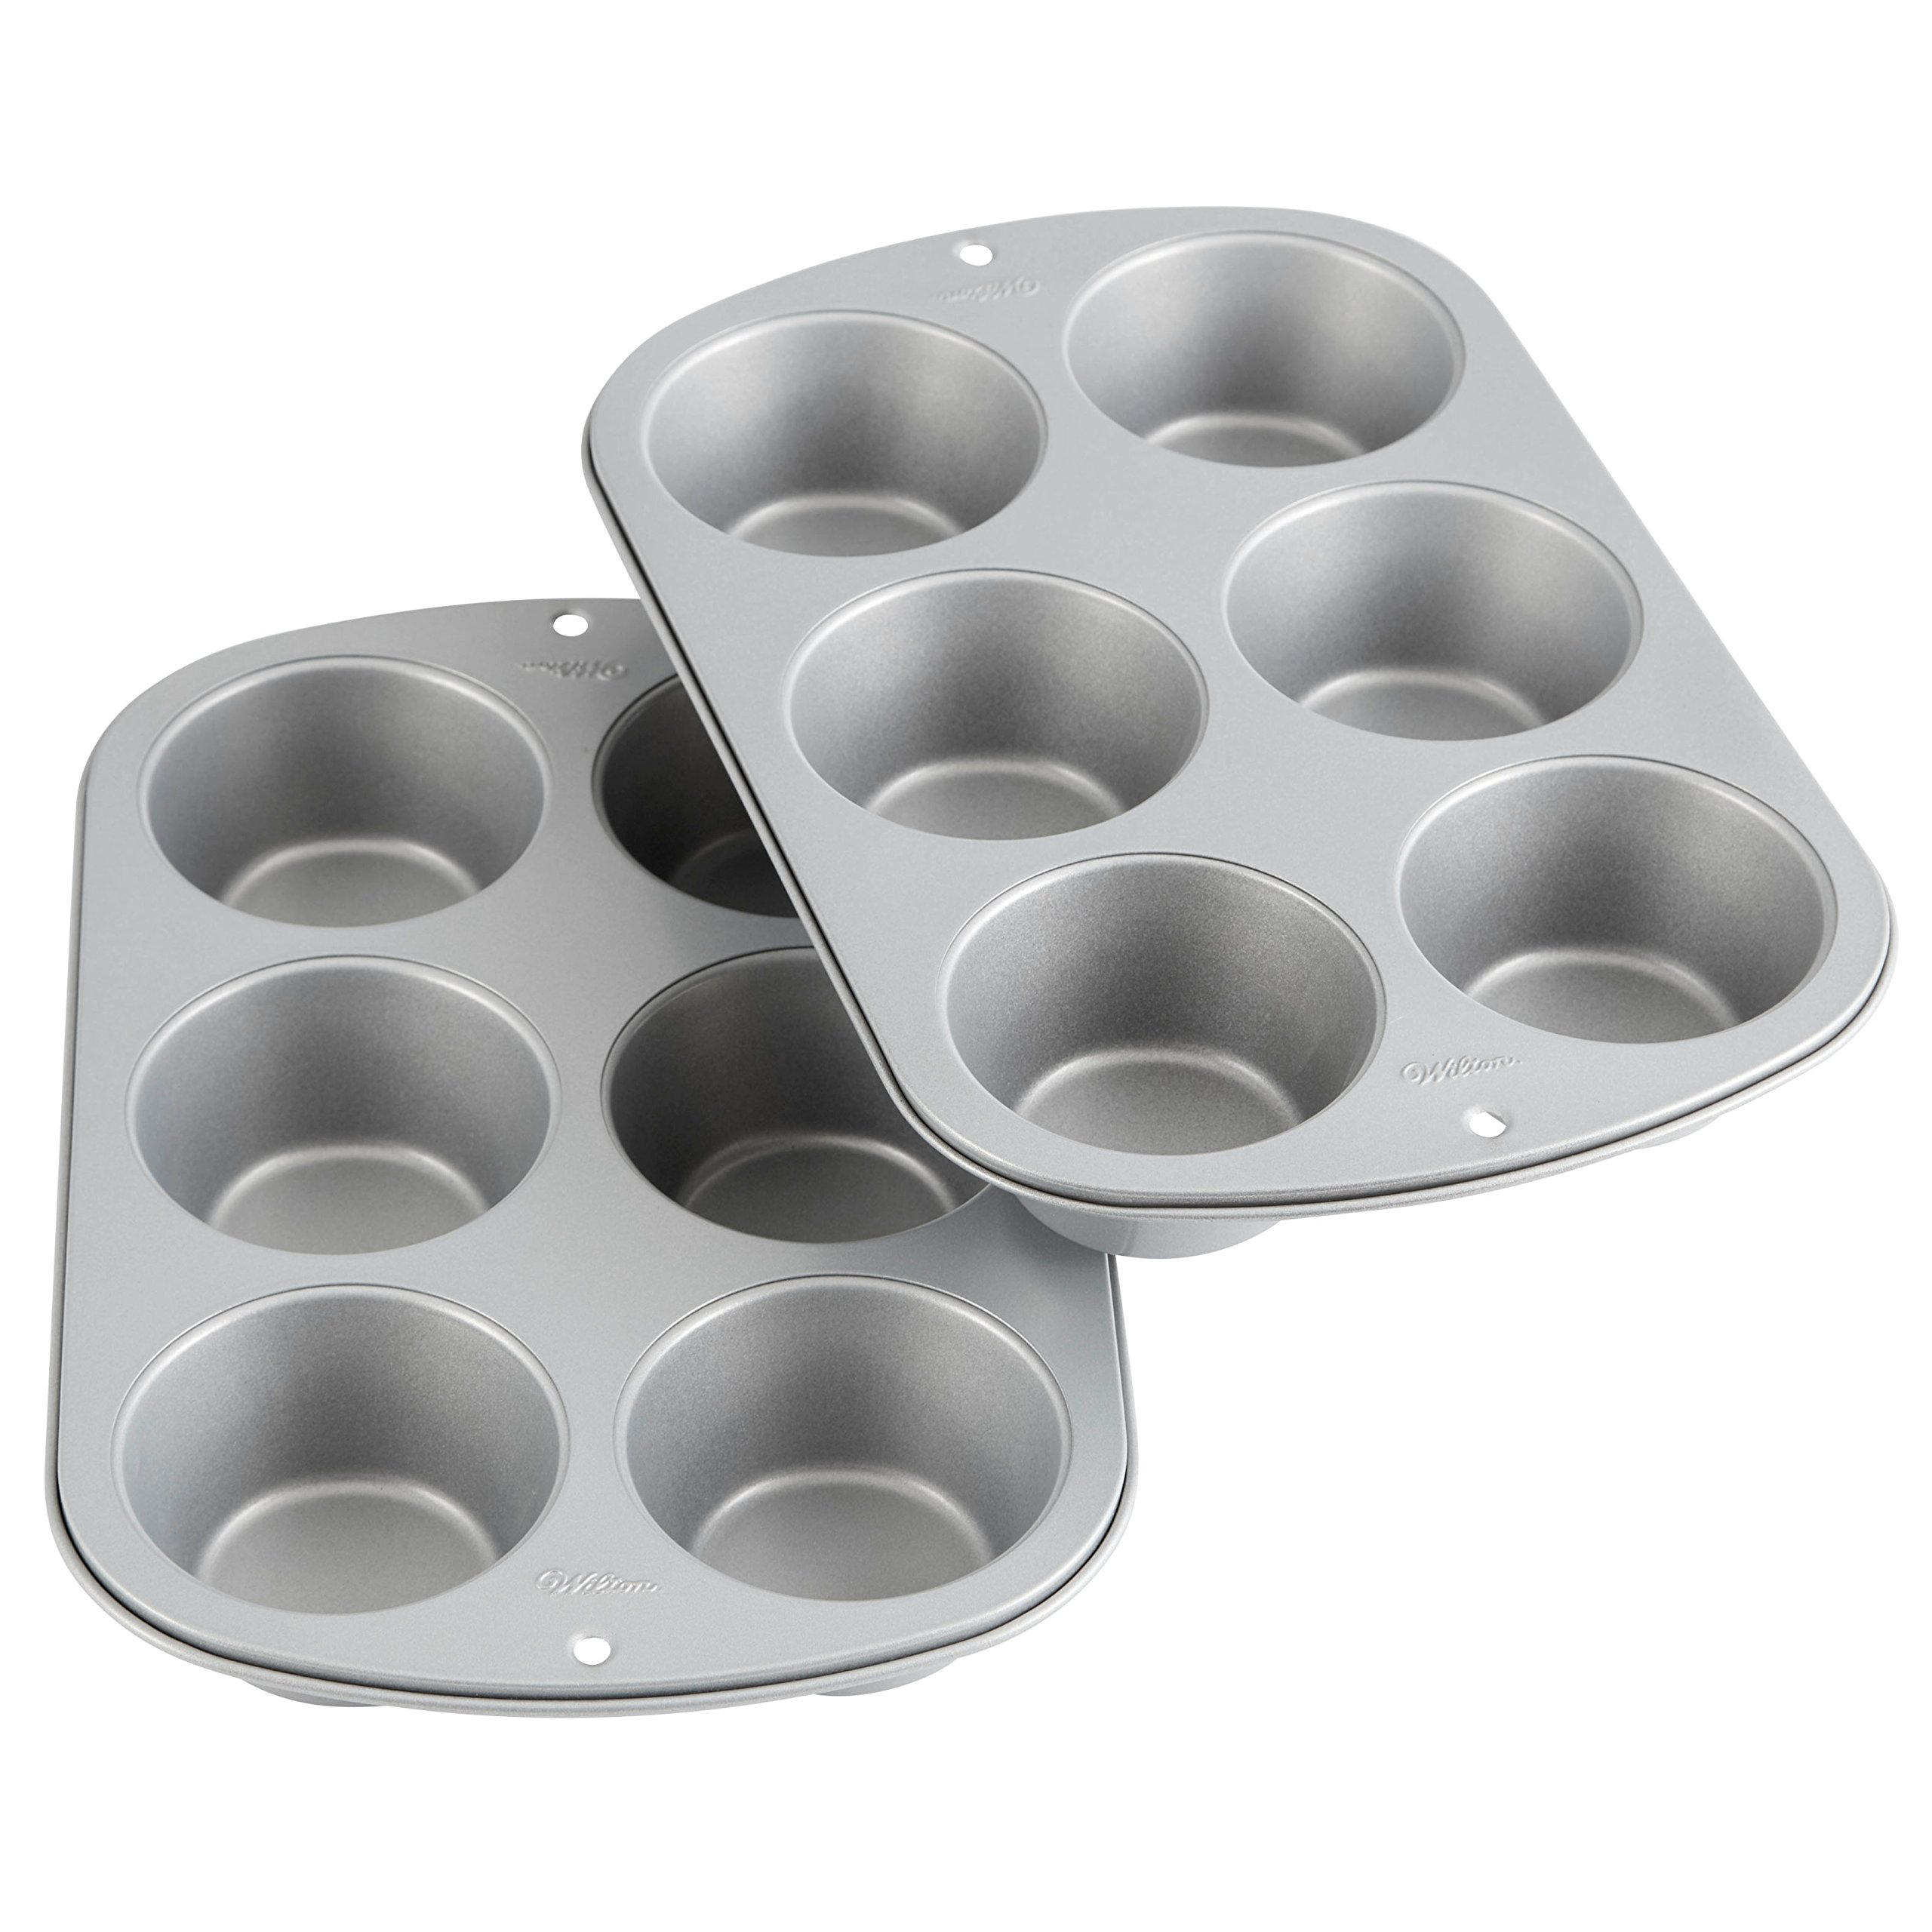 Wilton 2109-6825 Recipe Right Non-Stick 6 Muffin Pan, Multipack of 2 Baking, 6-Cup Jumbo (2-Pk.), Assorted